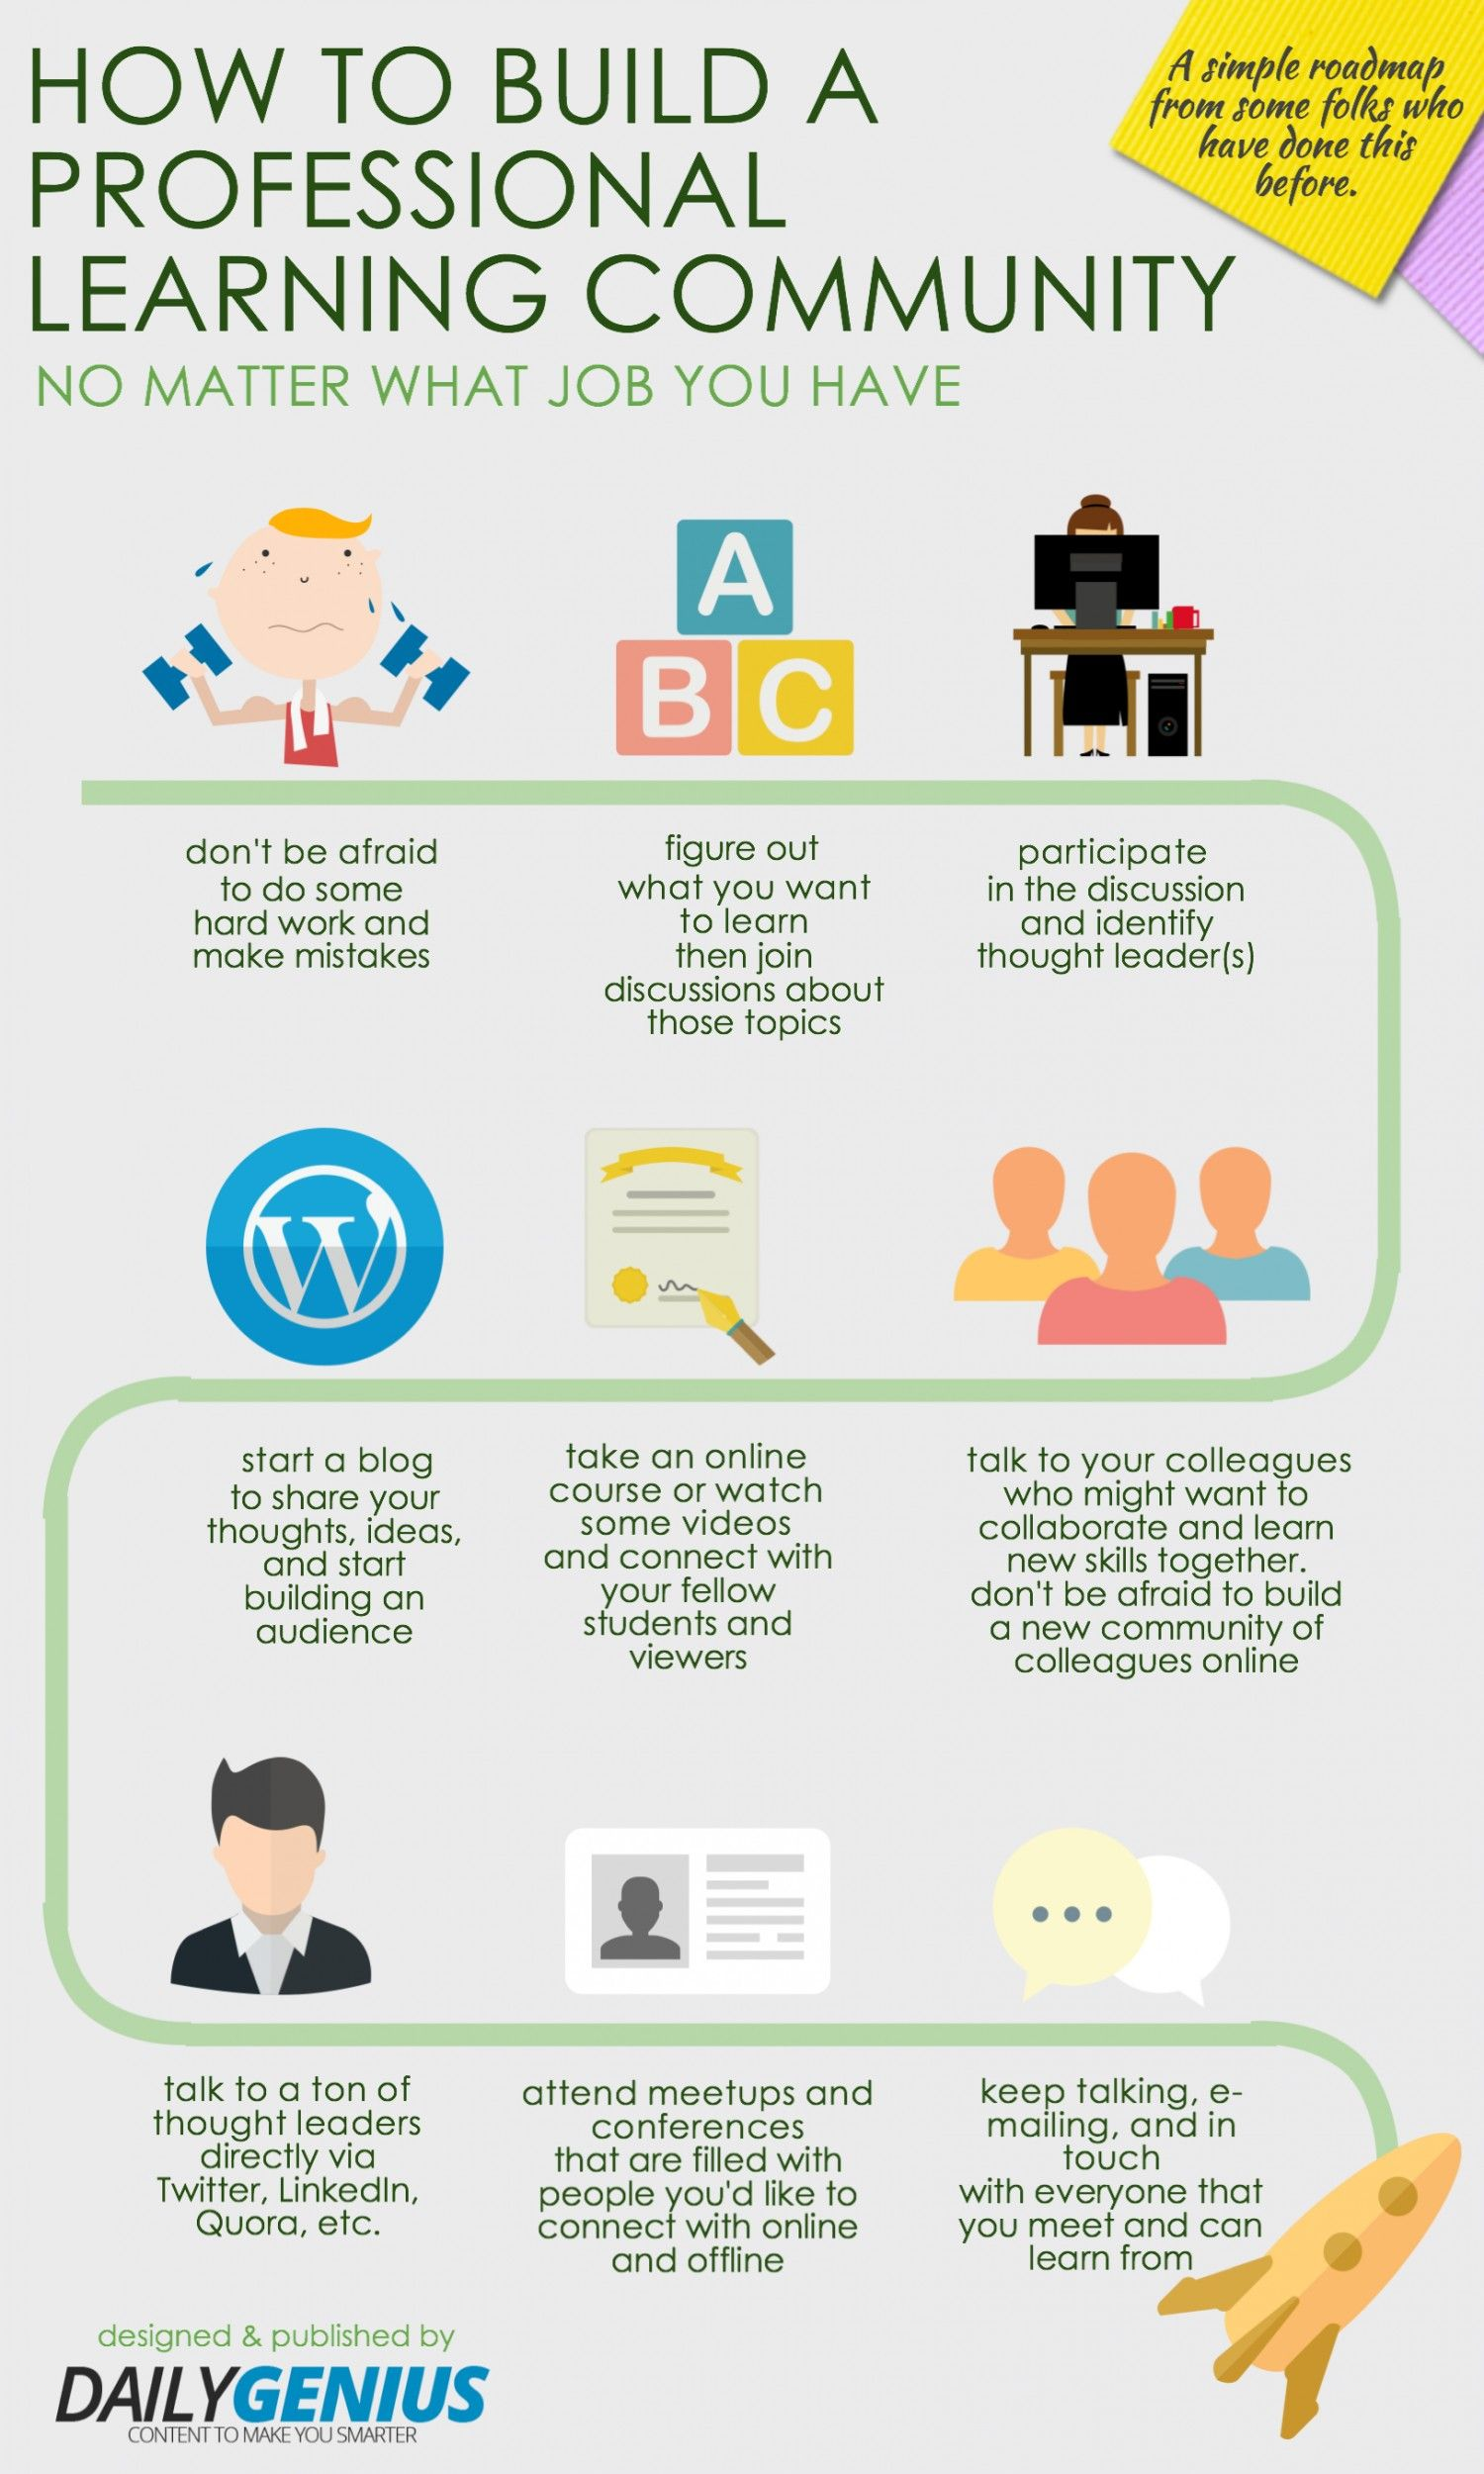 10 Great Tips For Building Your Professional Learning